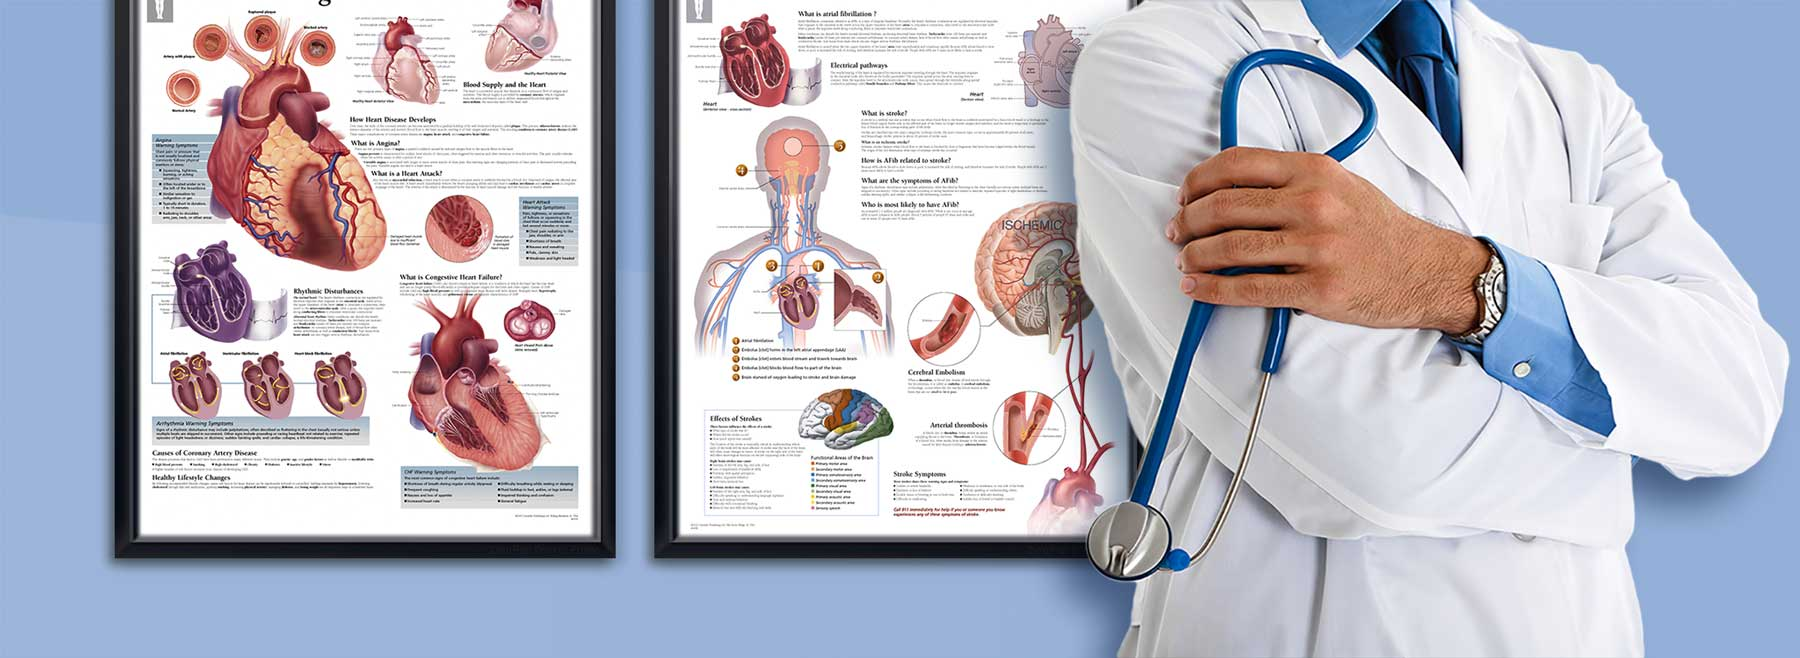 ClinicalPosters